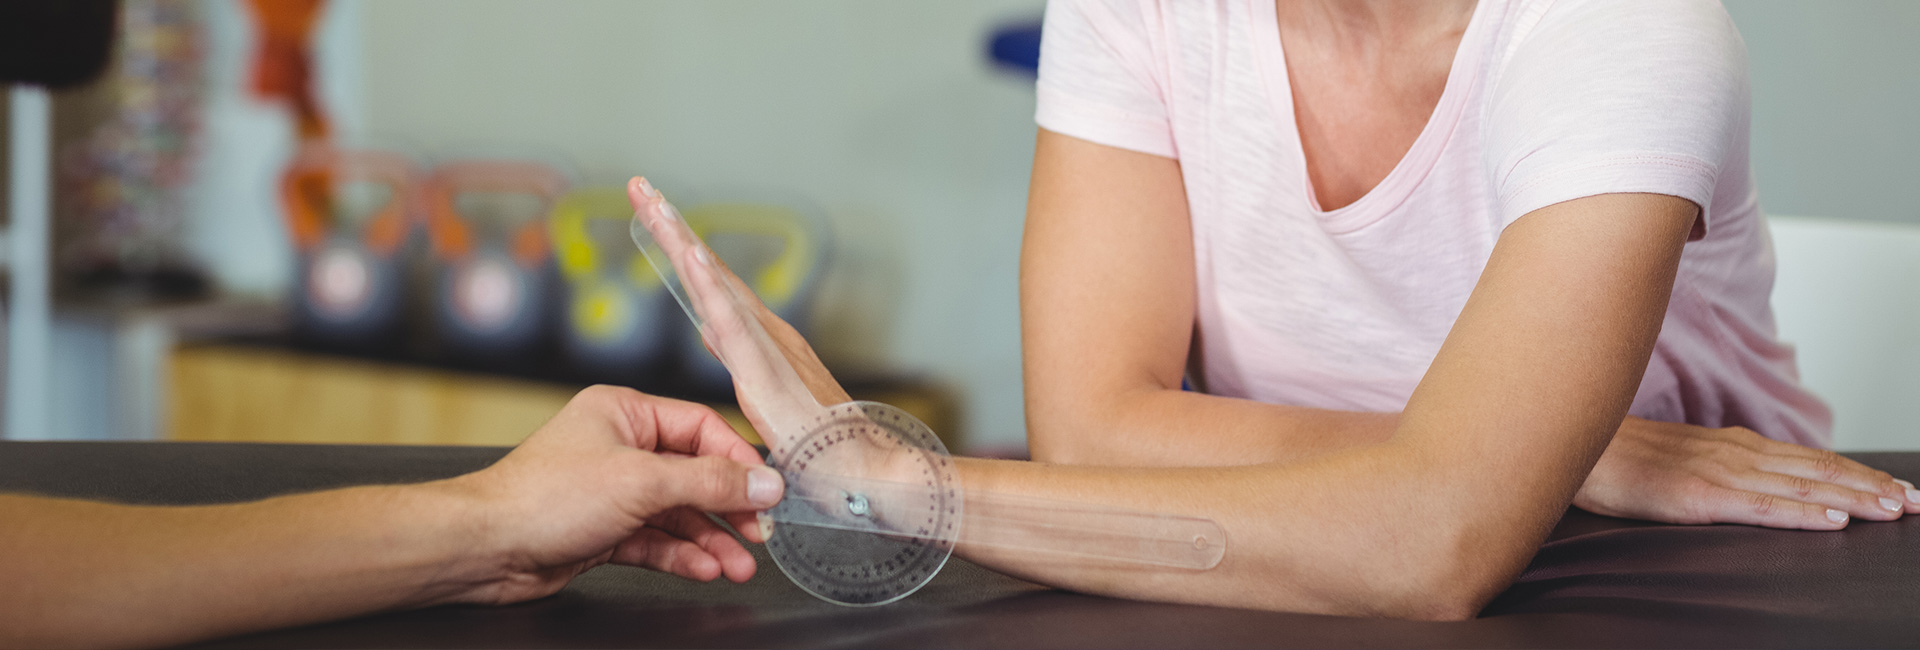 Therapeutic-Associates-Physical-Therapy---Hand-Therapy